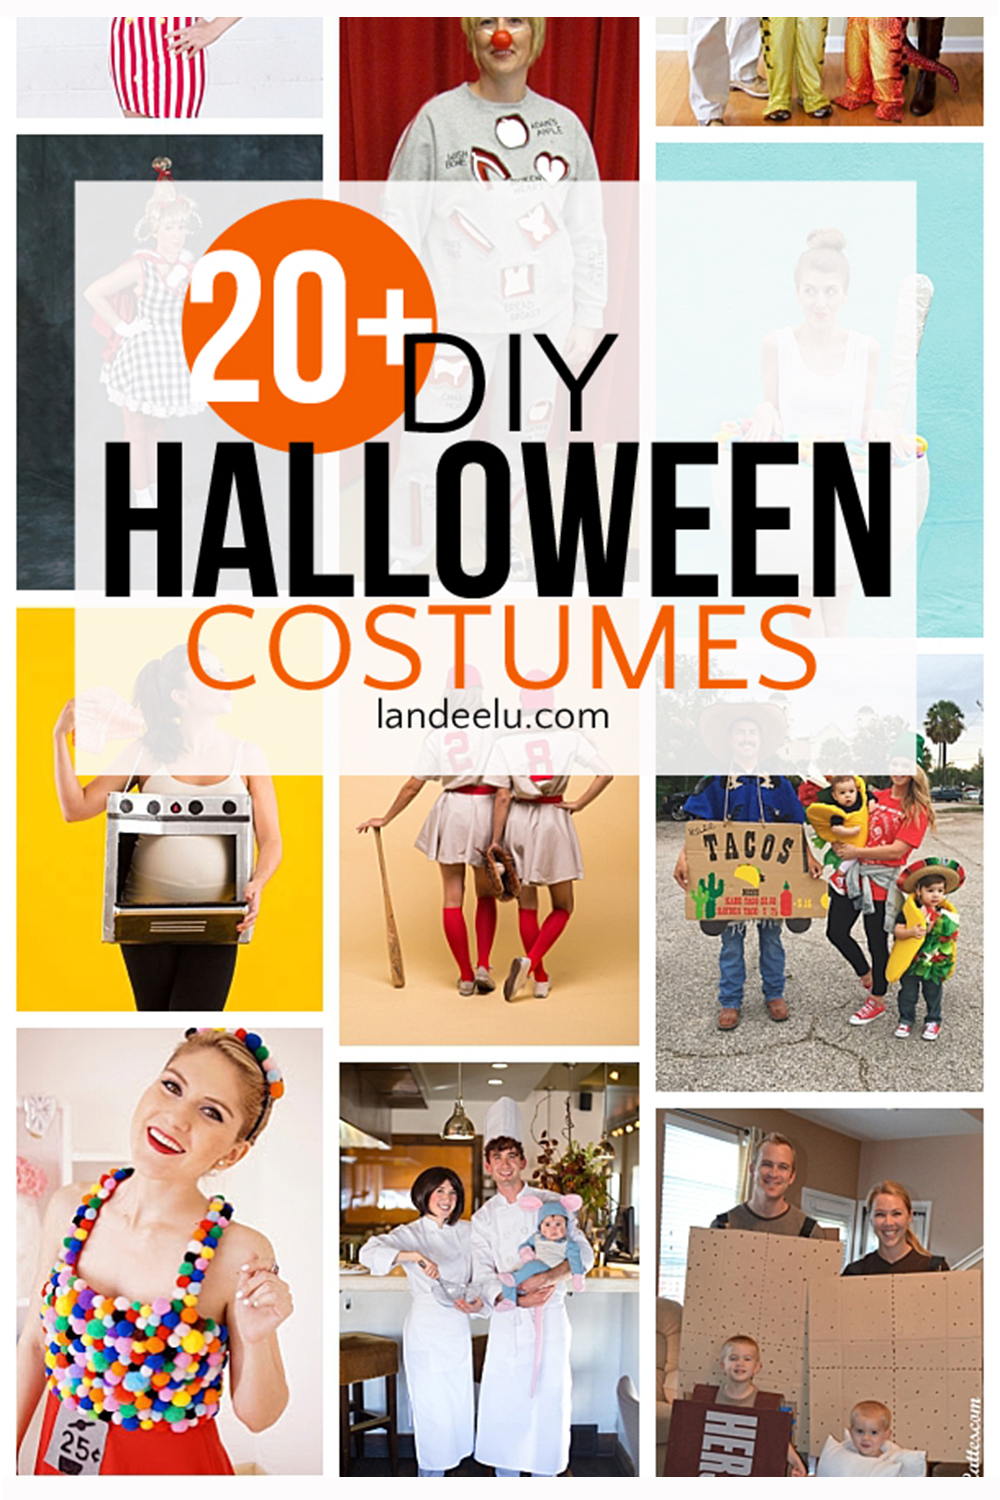 So many fun DIY halloween costumes! Family Halloween costume ideas too! #diyhalloween #halloweencostumes #halloweenideas #halloweencostumeideas #halloween